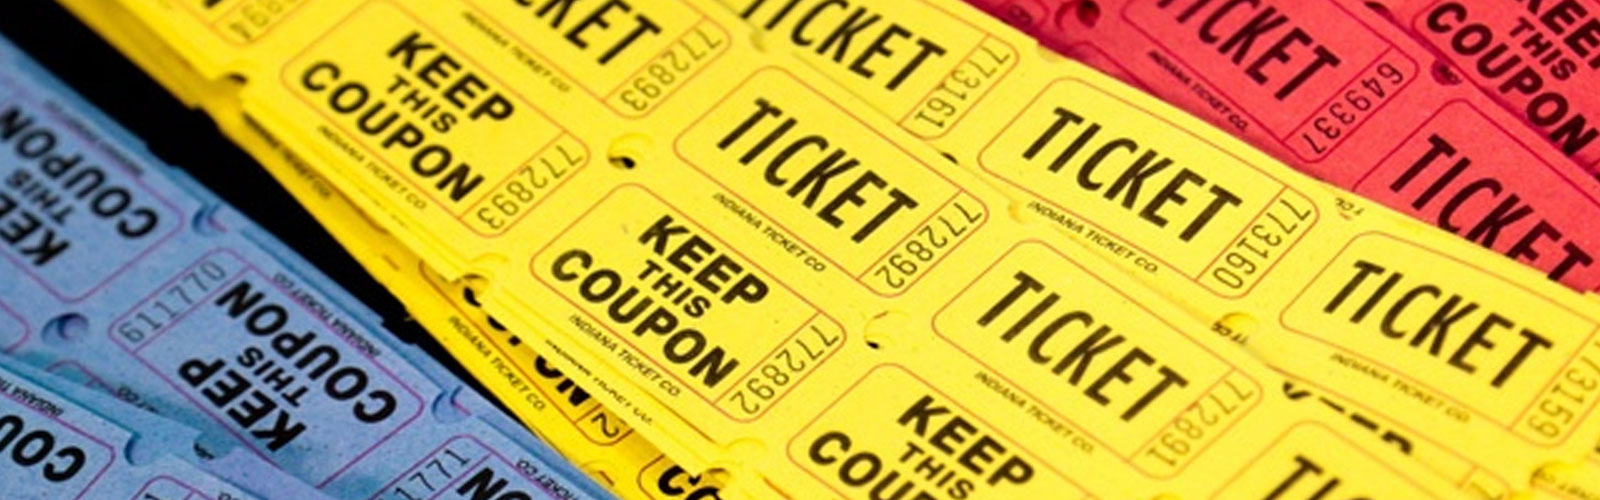 ticket-coupon